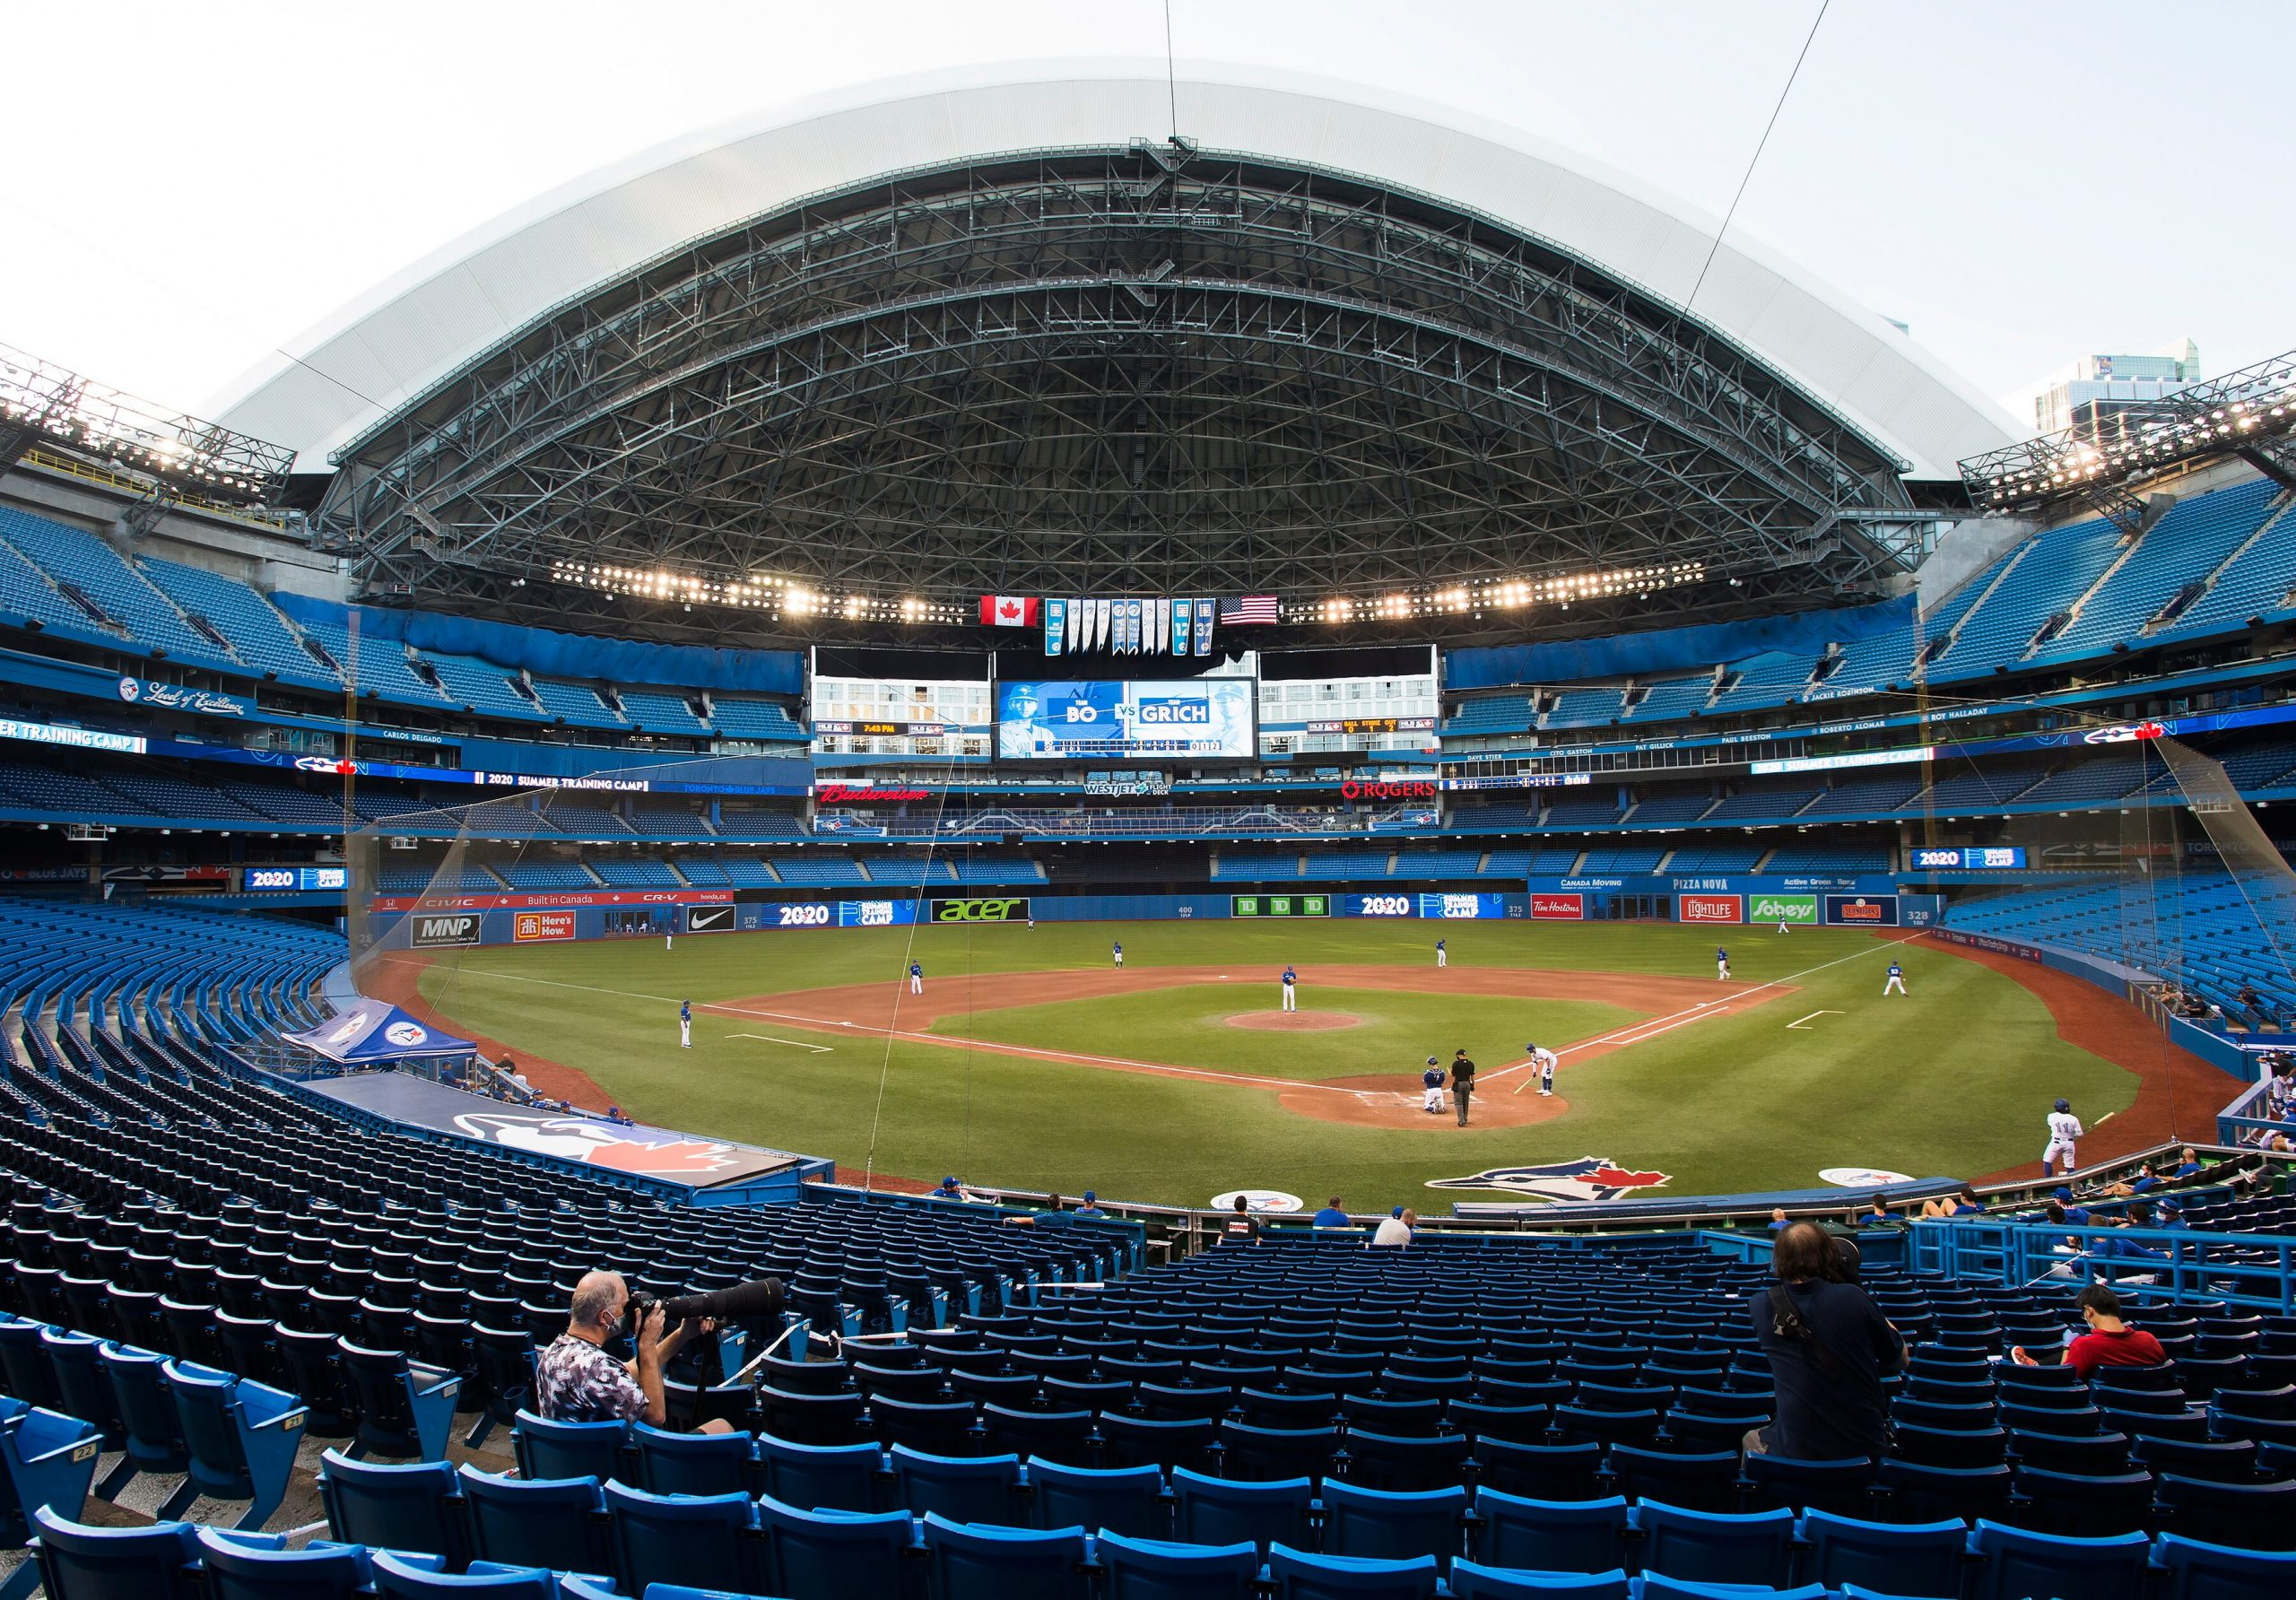 No Canada: Blue Jays barred from playing games in Toronto